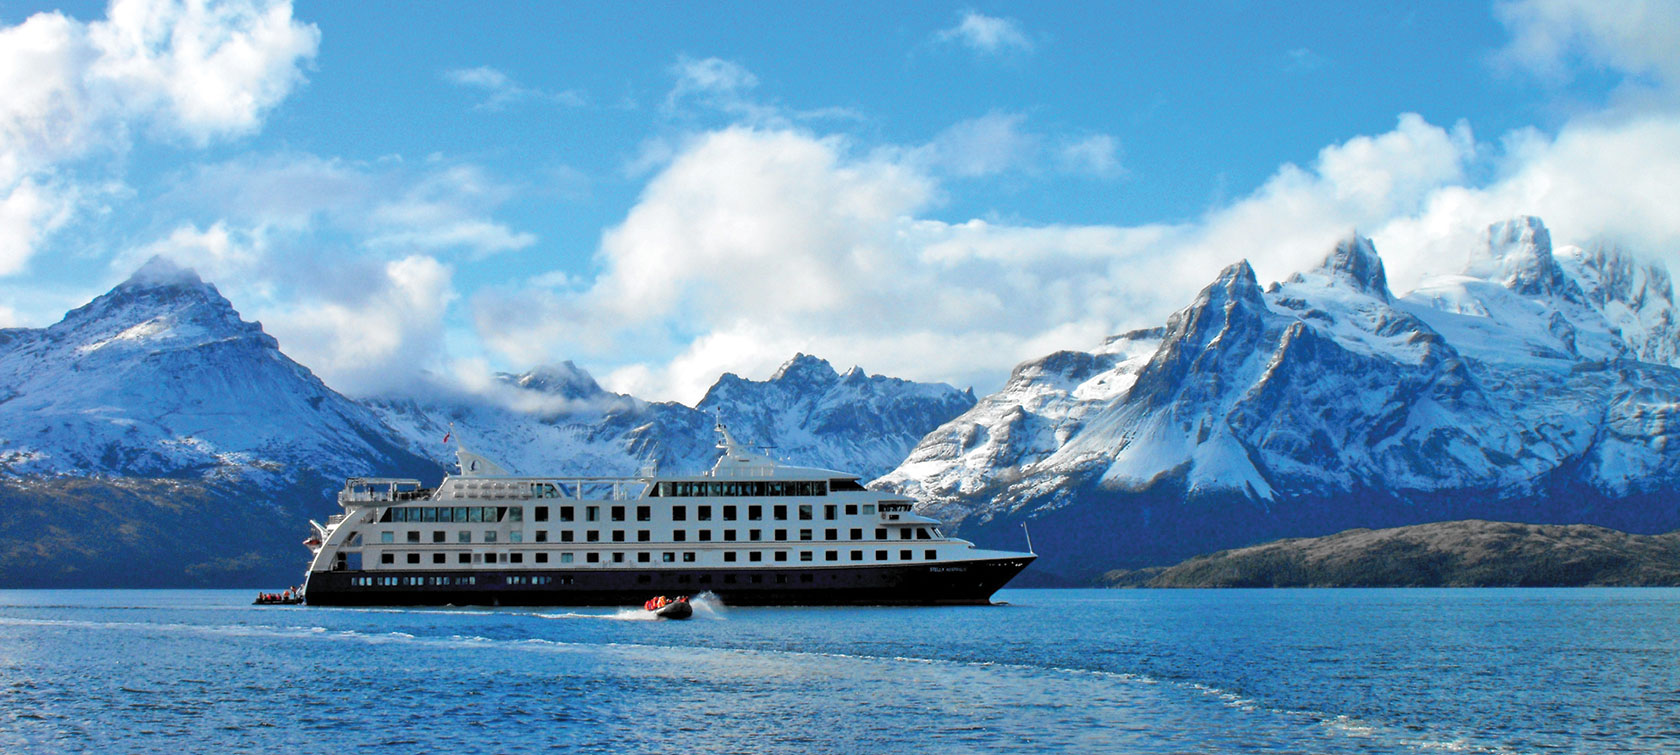 Australis Expedition Cruises Latin America Argentina Chile